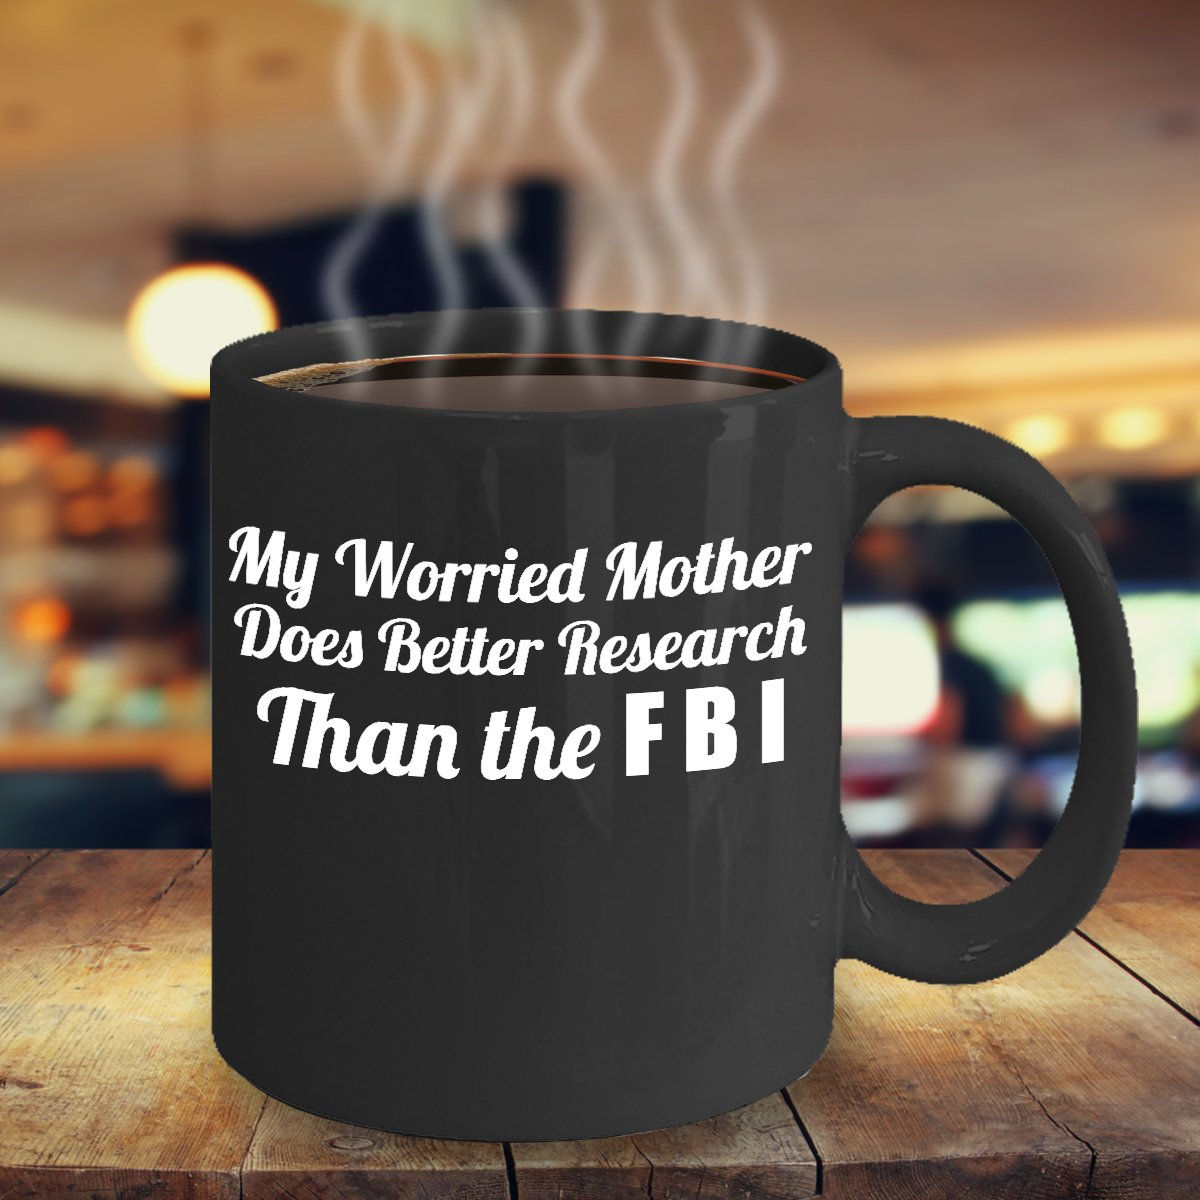 TeesCloset Funny Dishwasher & Microwave Safe Ceramic Mugs for Mom on Mother's Day or Birthday